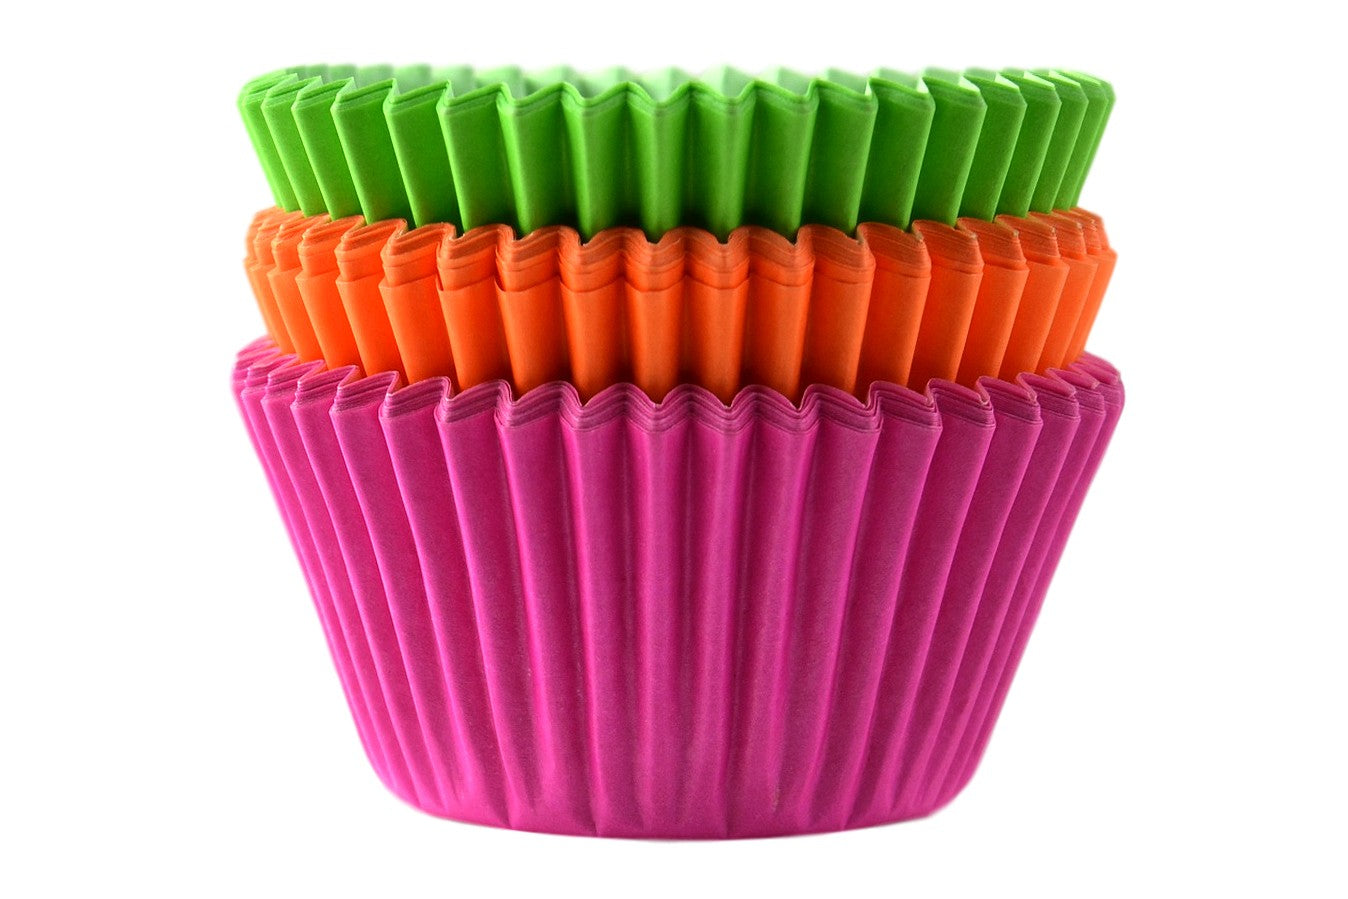 Professional Quality Muffin Cases - Neon 45pk